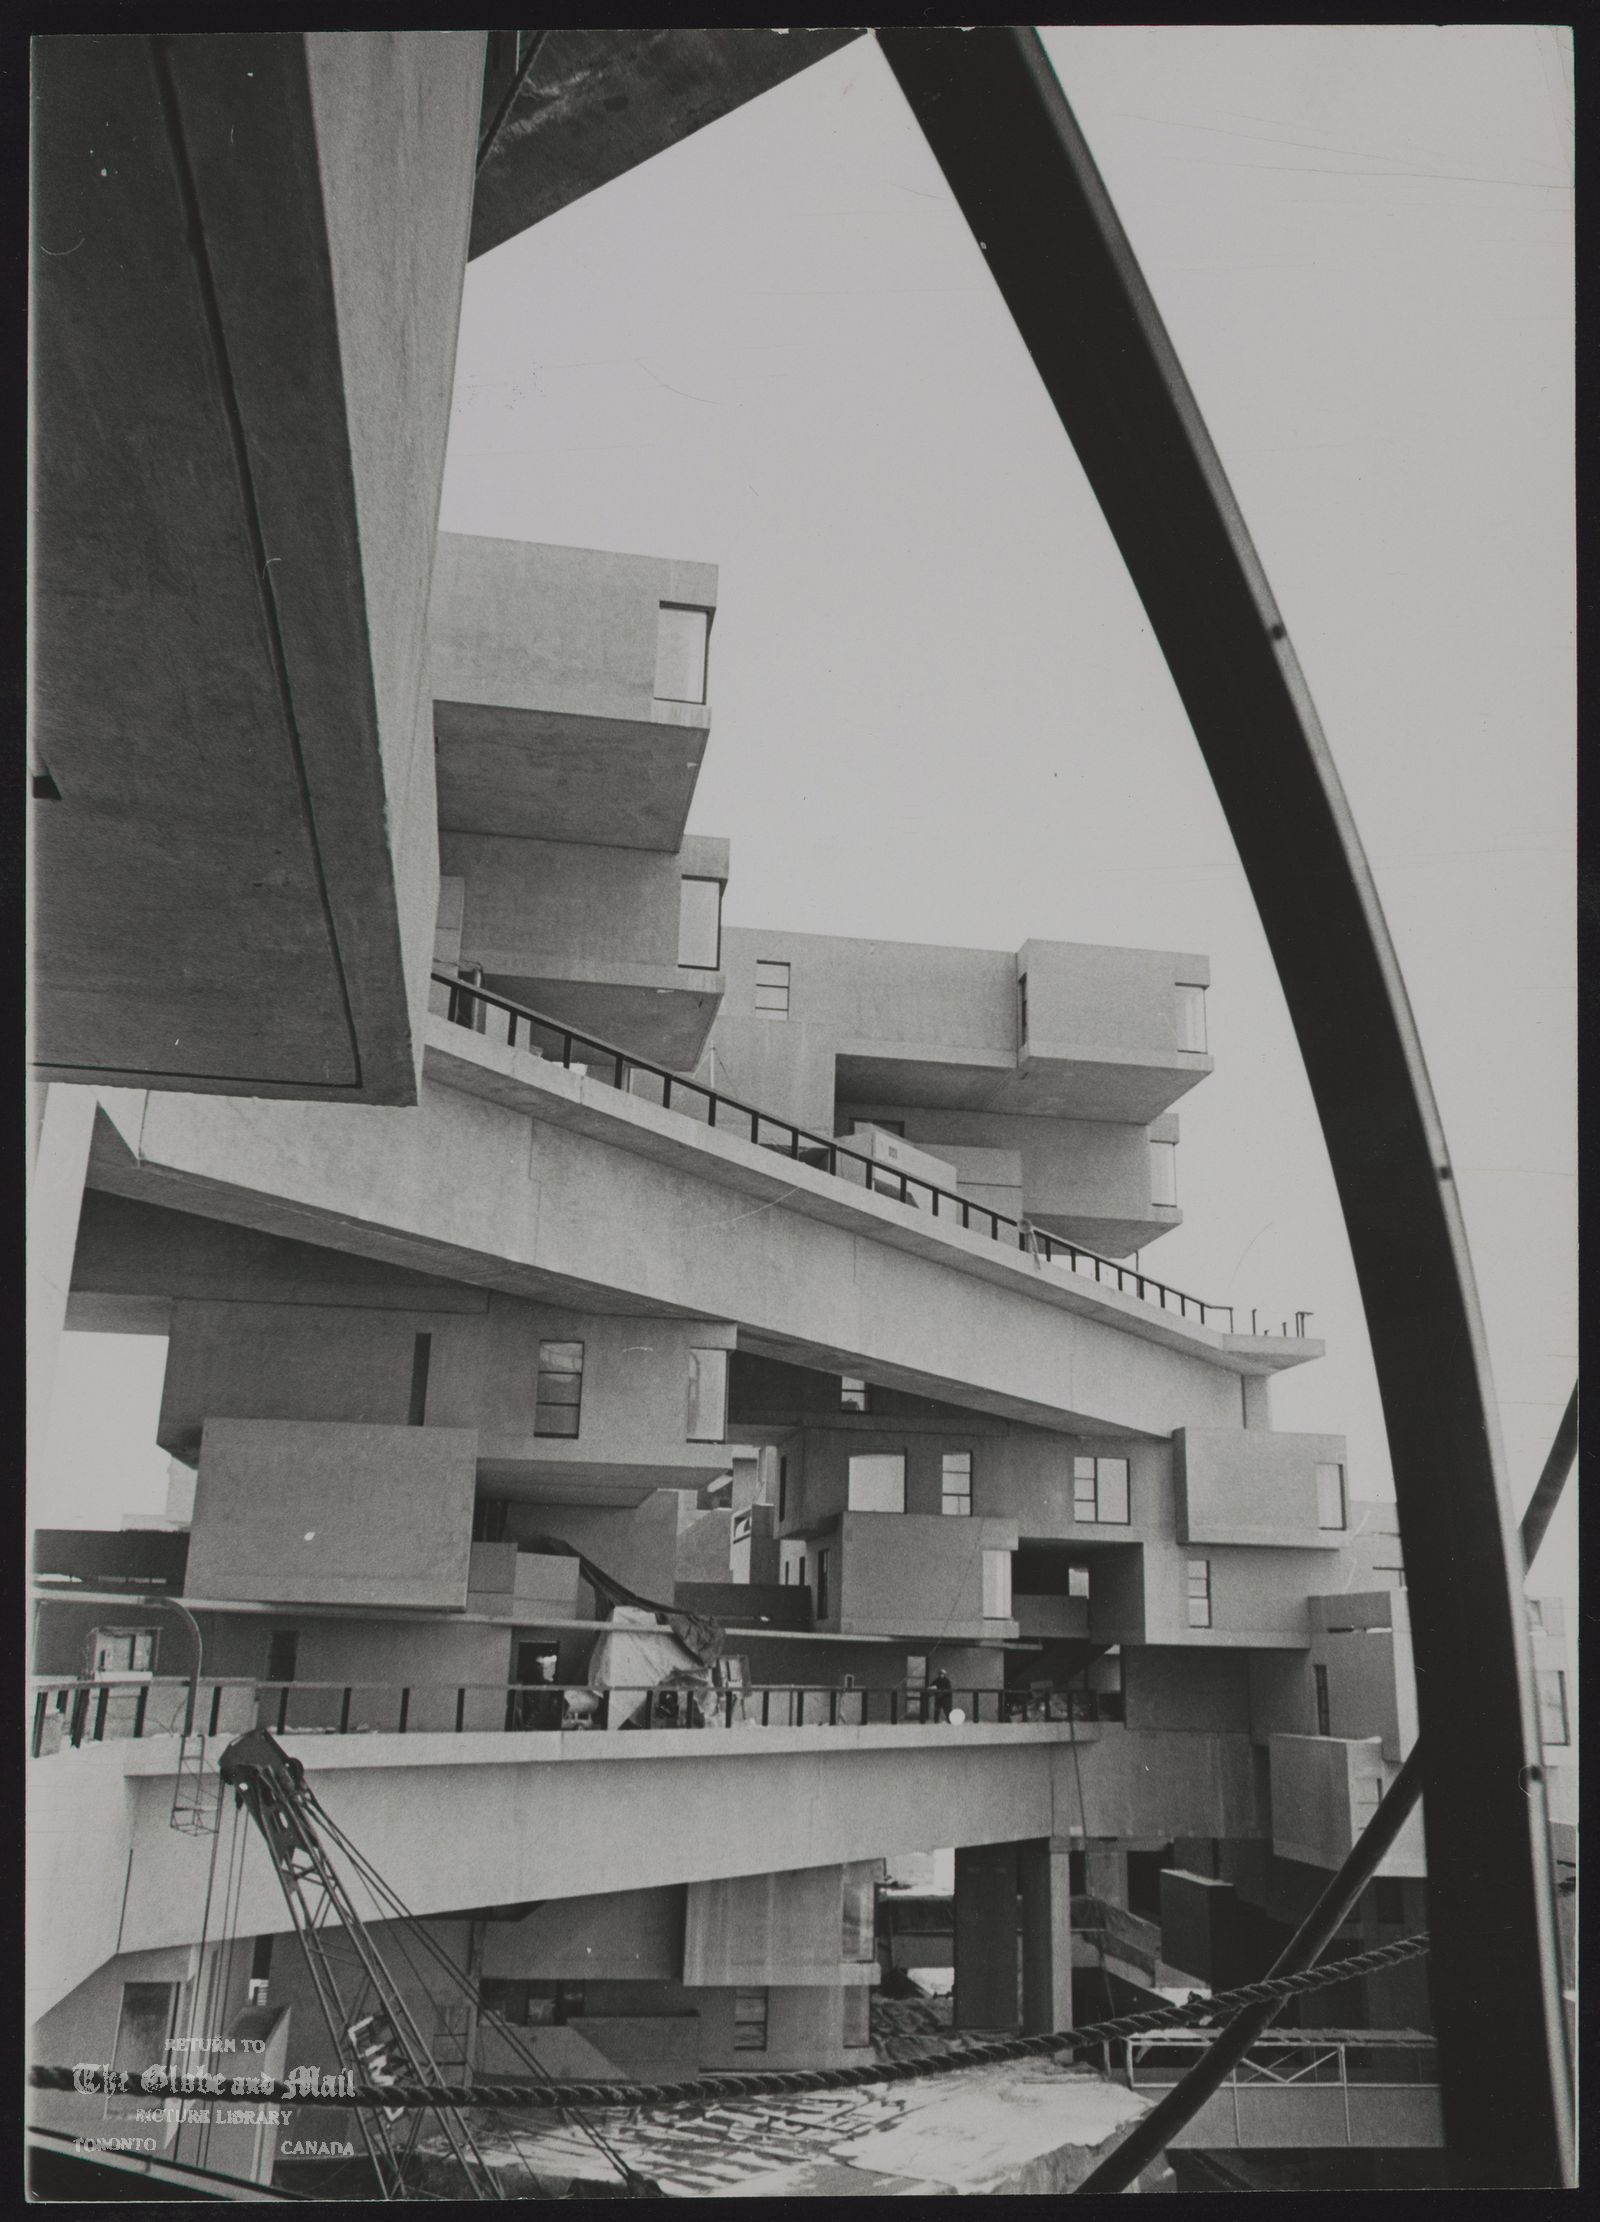 WORLD FAIR, MONTREAL [EXPO 67] How Habitat '67 looks from a window in one of its suites under construction at Expo.